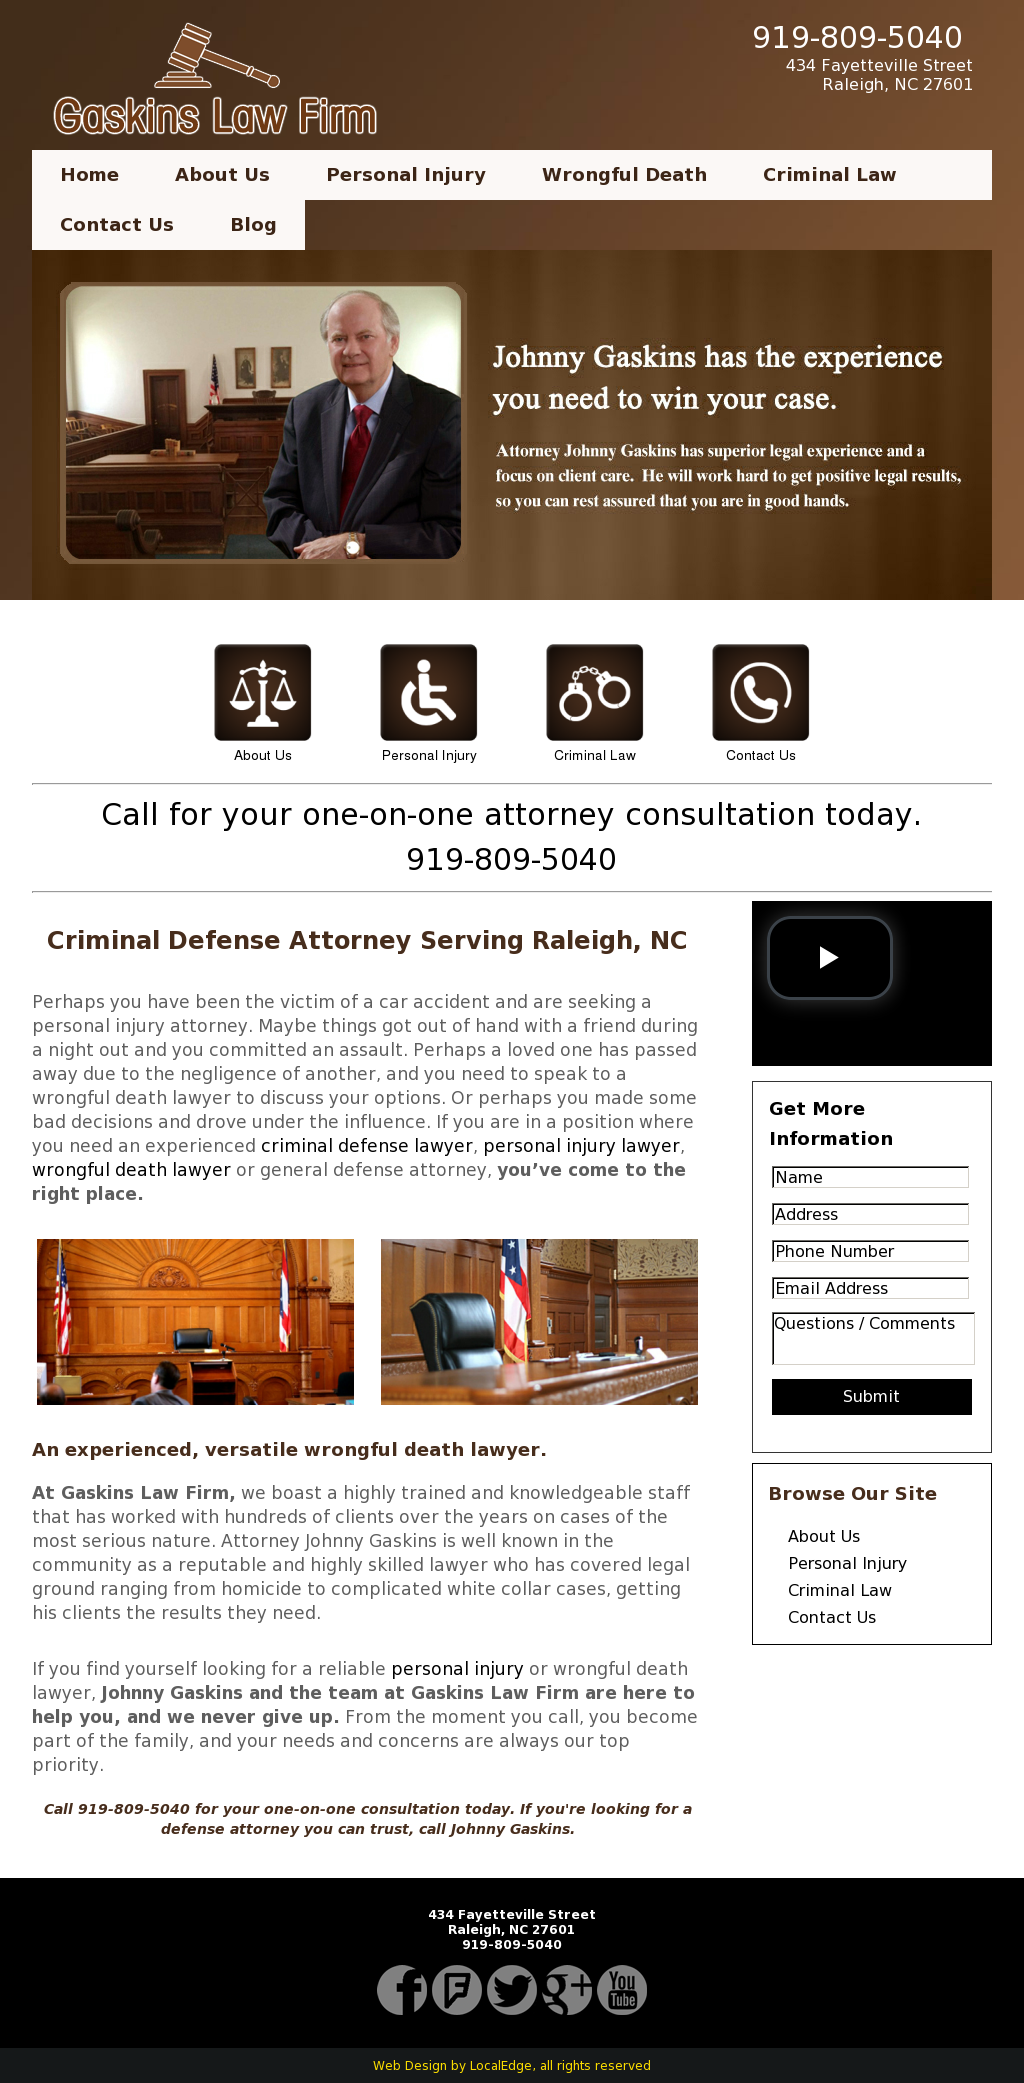 Gaskins Law Firm Competitors, Revenue and Employees - Owler Company